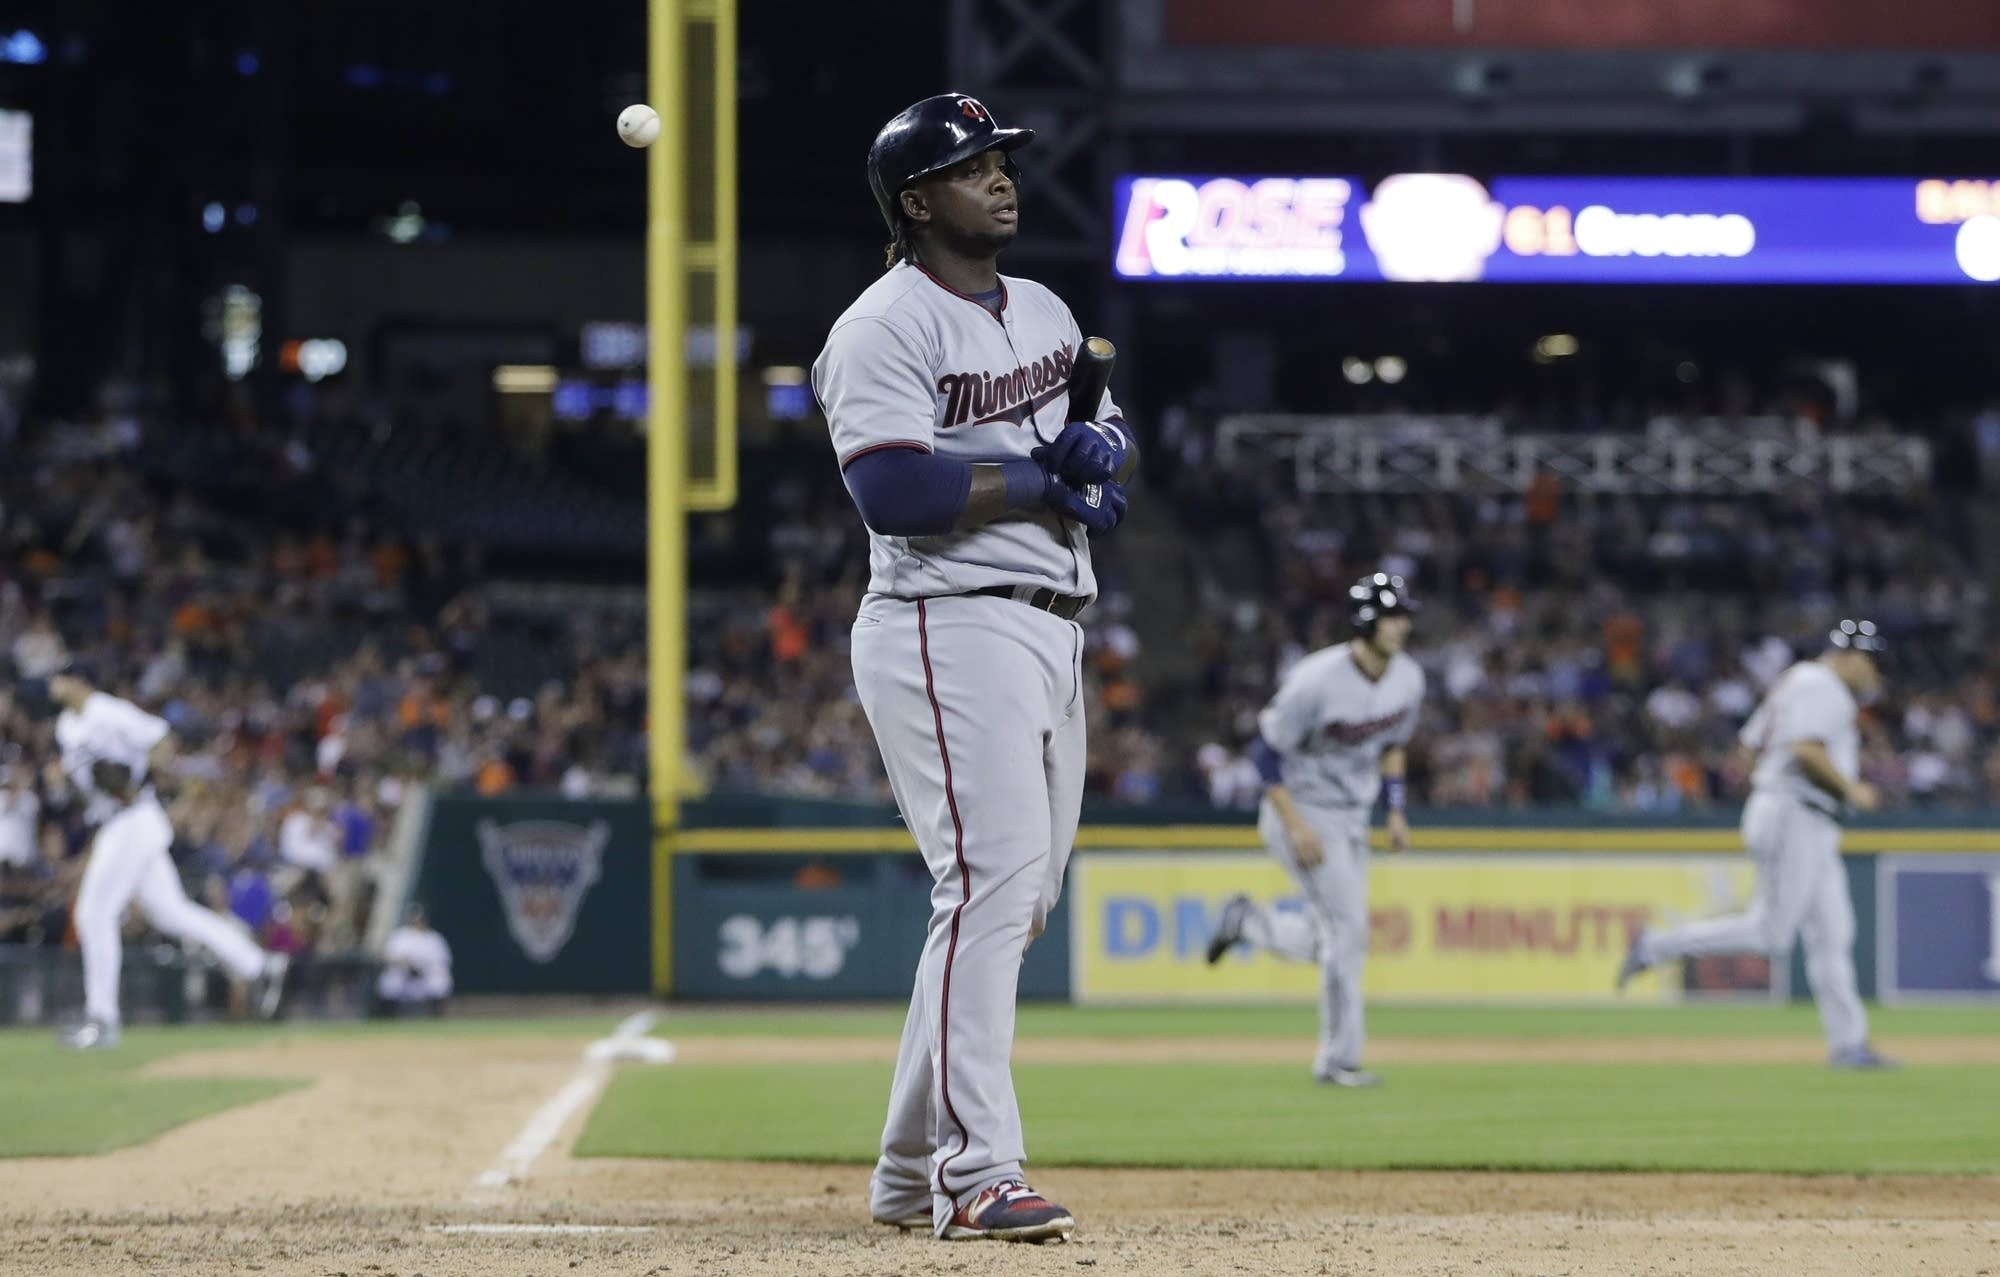 Cities photographer makes assault claim against Twins' Miguel Sano